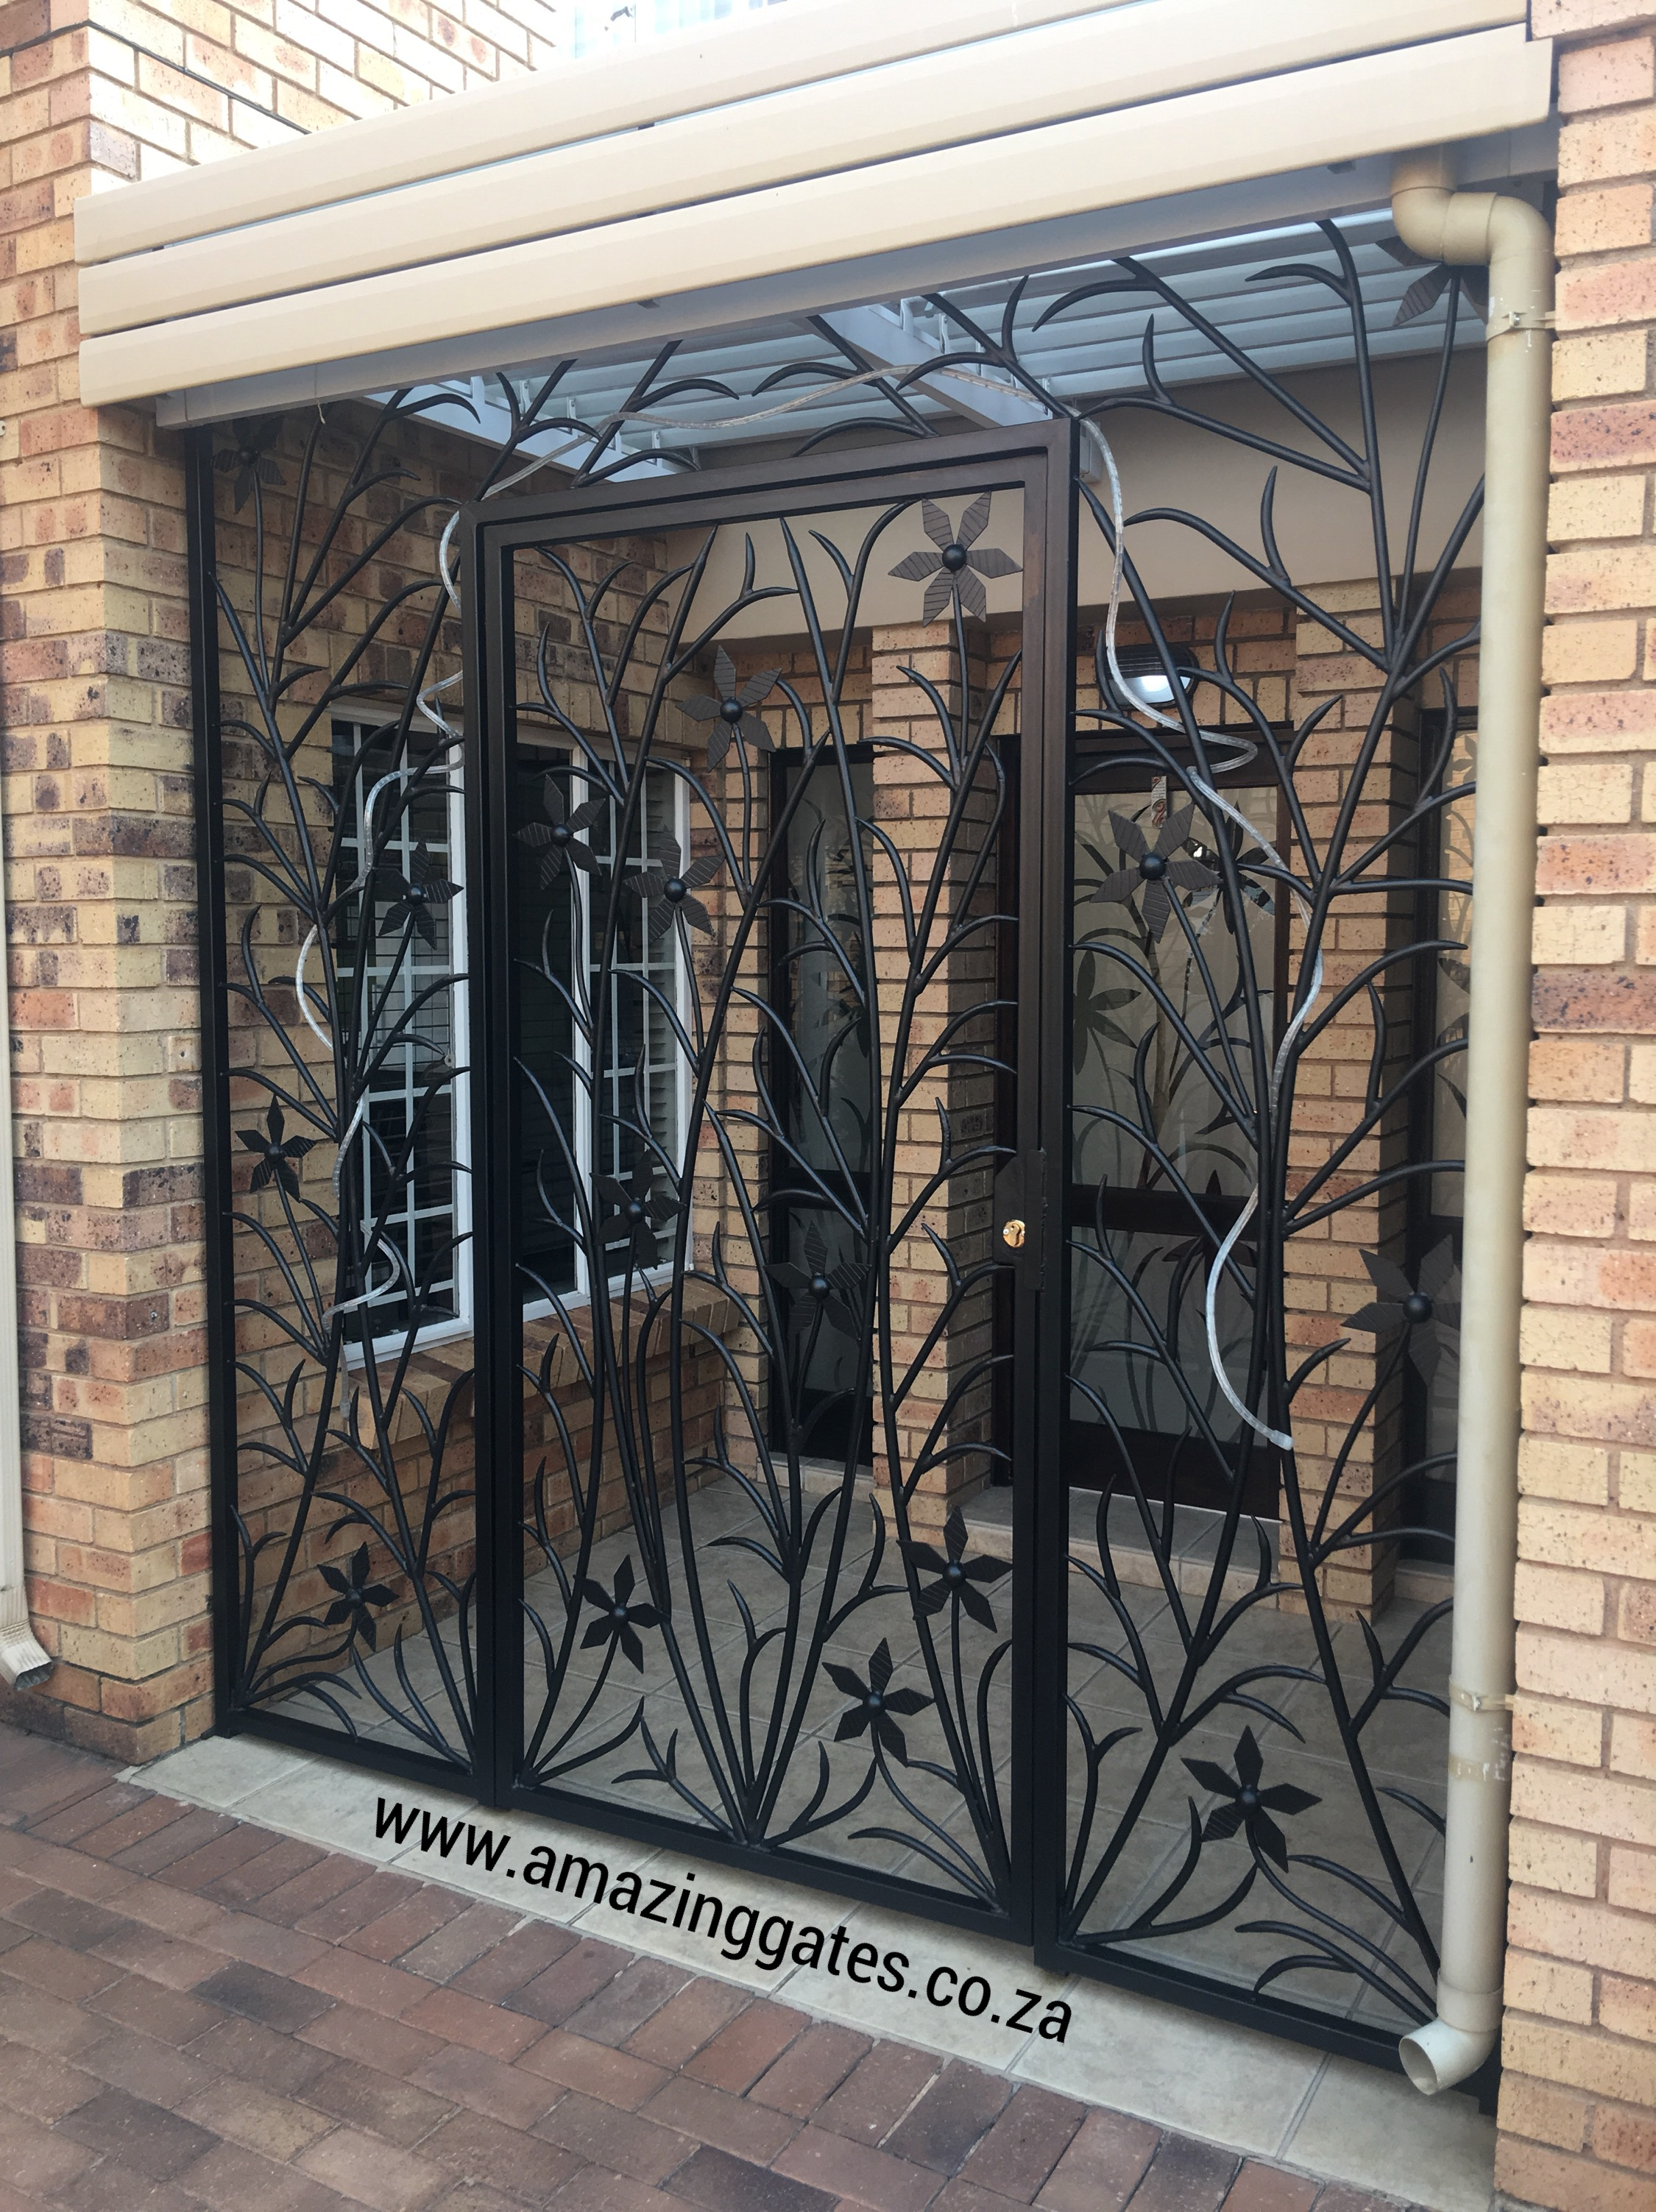 Driveway gates in gauteng provide access to and from a property as well as a convenient entrance point for both vehicles and pedestrians